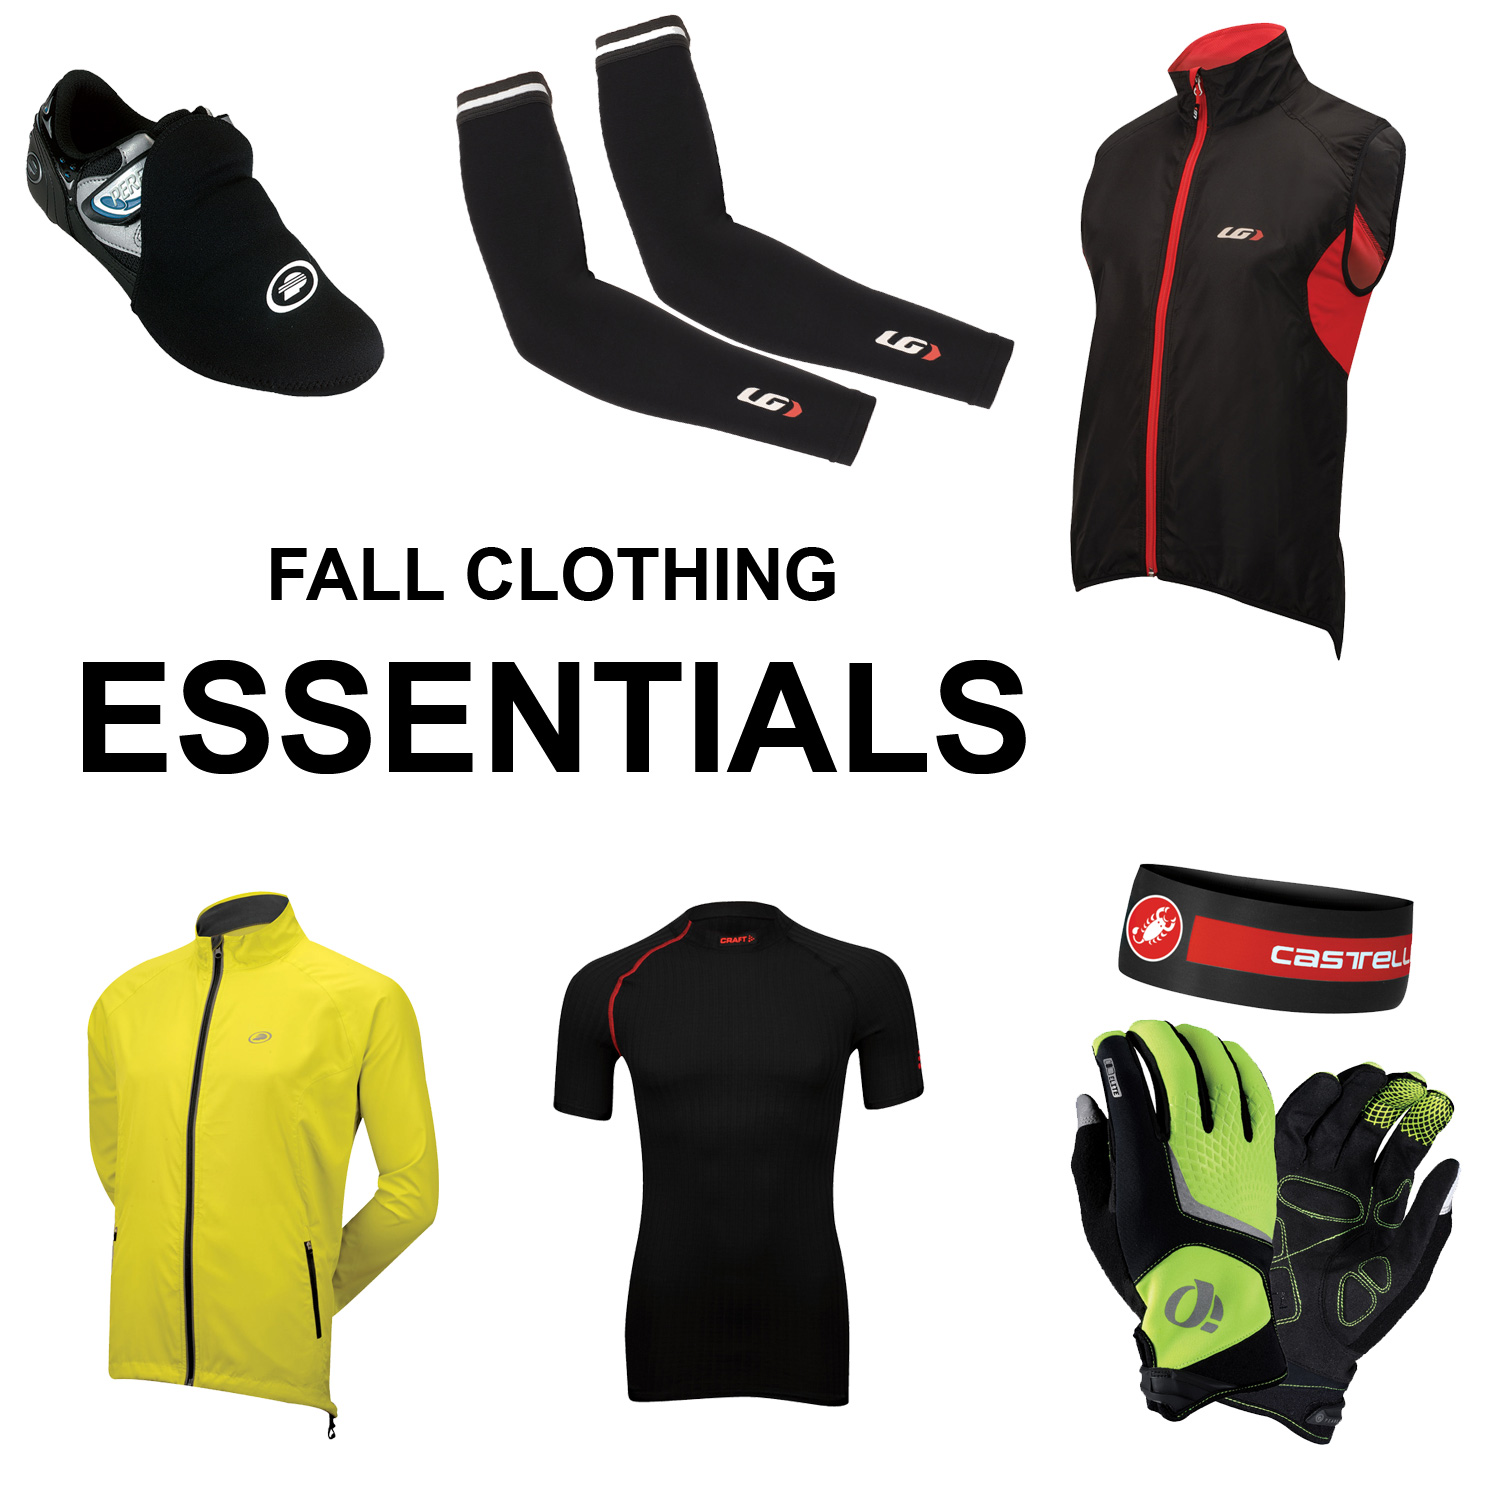 Fall Clothing Essentials